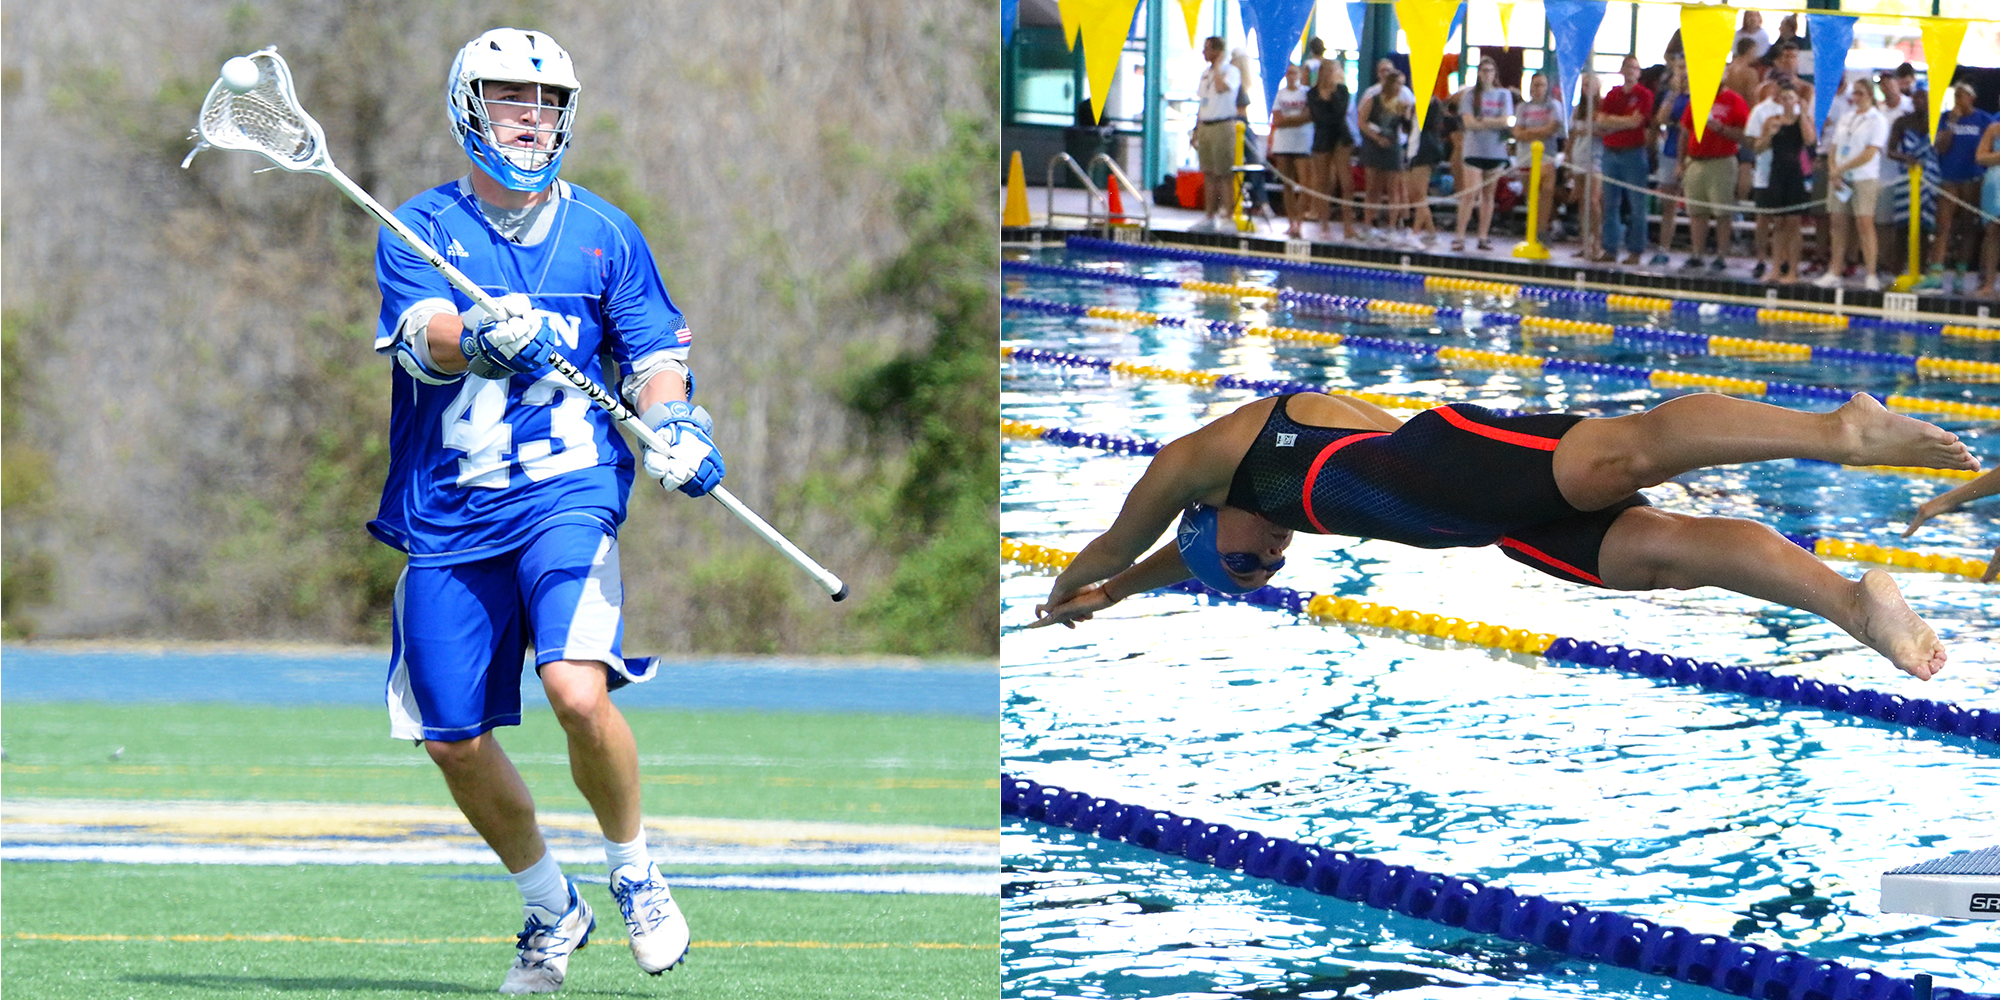 Bartusiak and Berraud-Galea Named Academic All-Americans